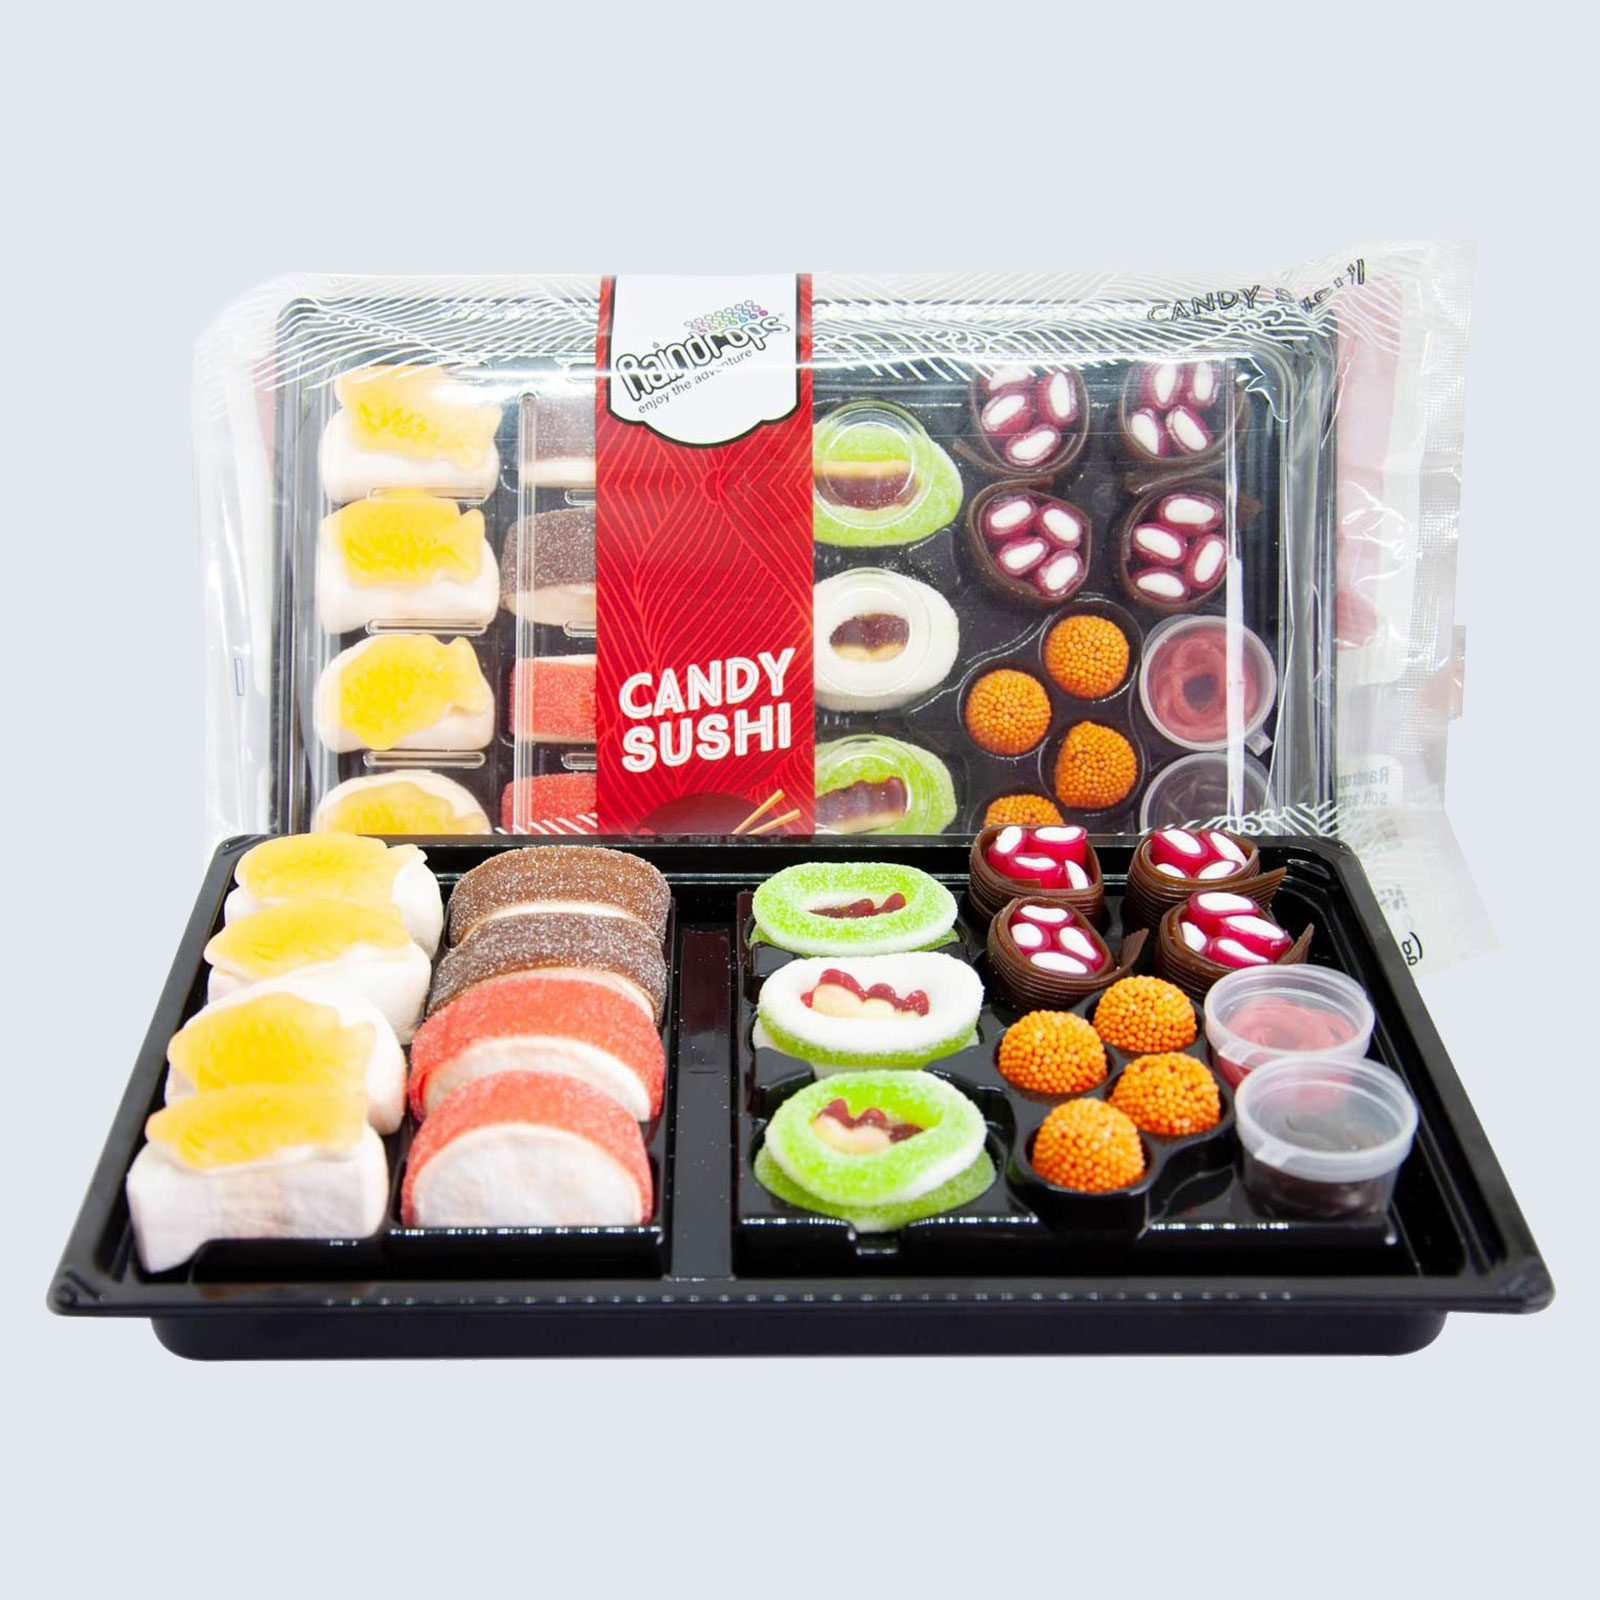 For the kid at heart: Raindrops Gummy Candy Sushi Bento Box